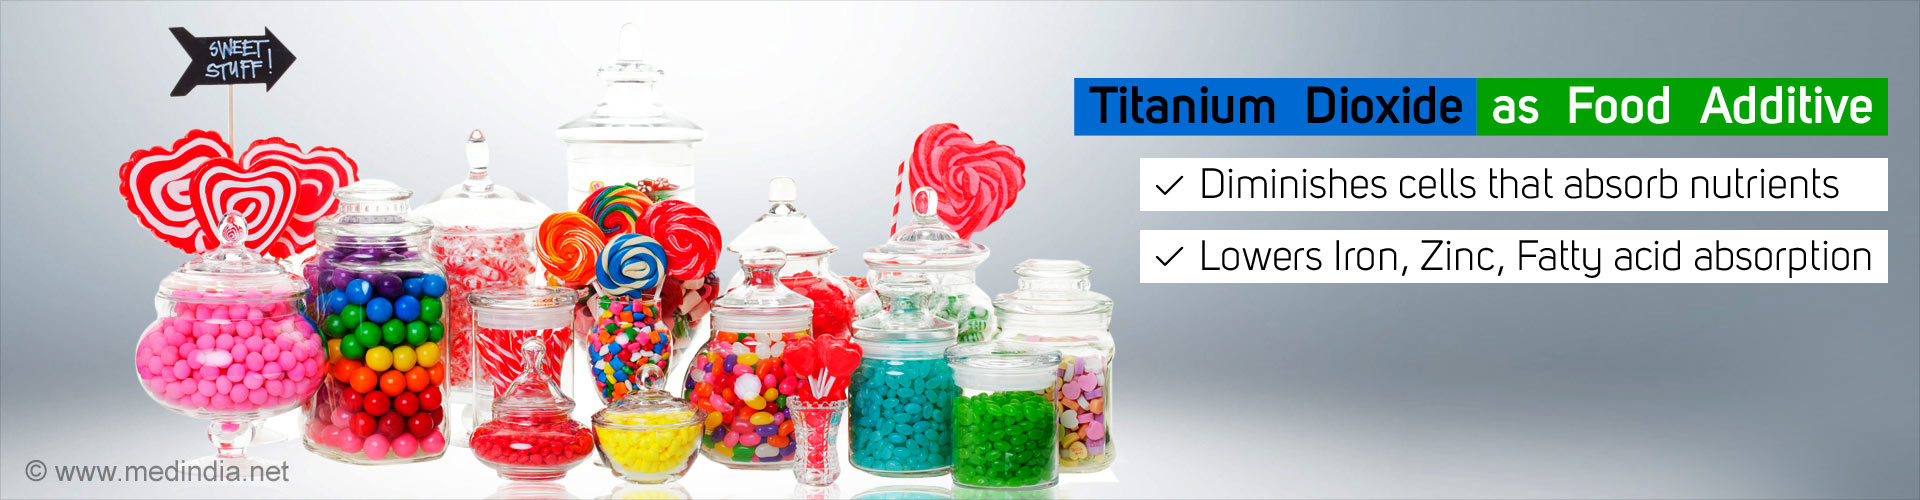 Titanium dioxide as food additive